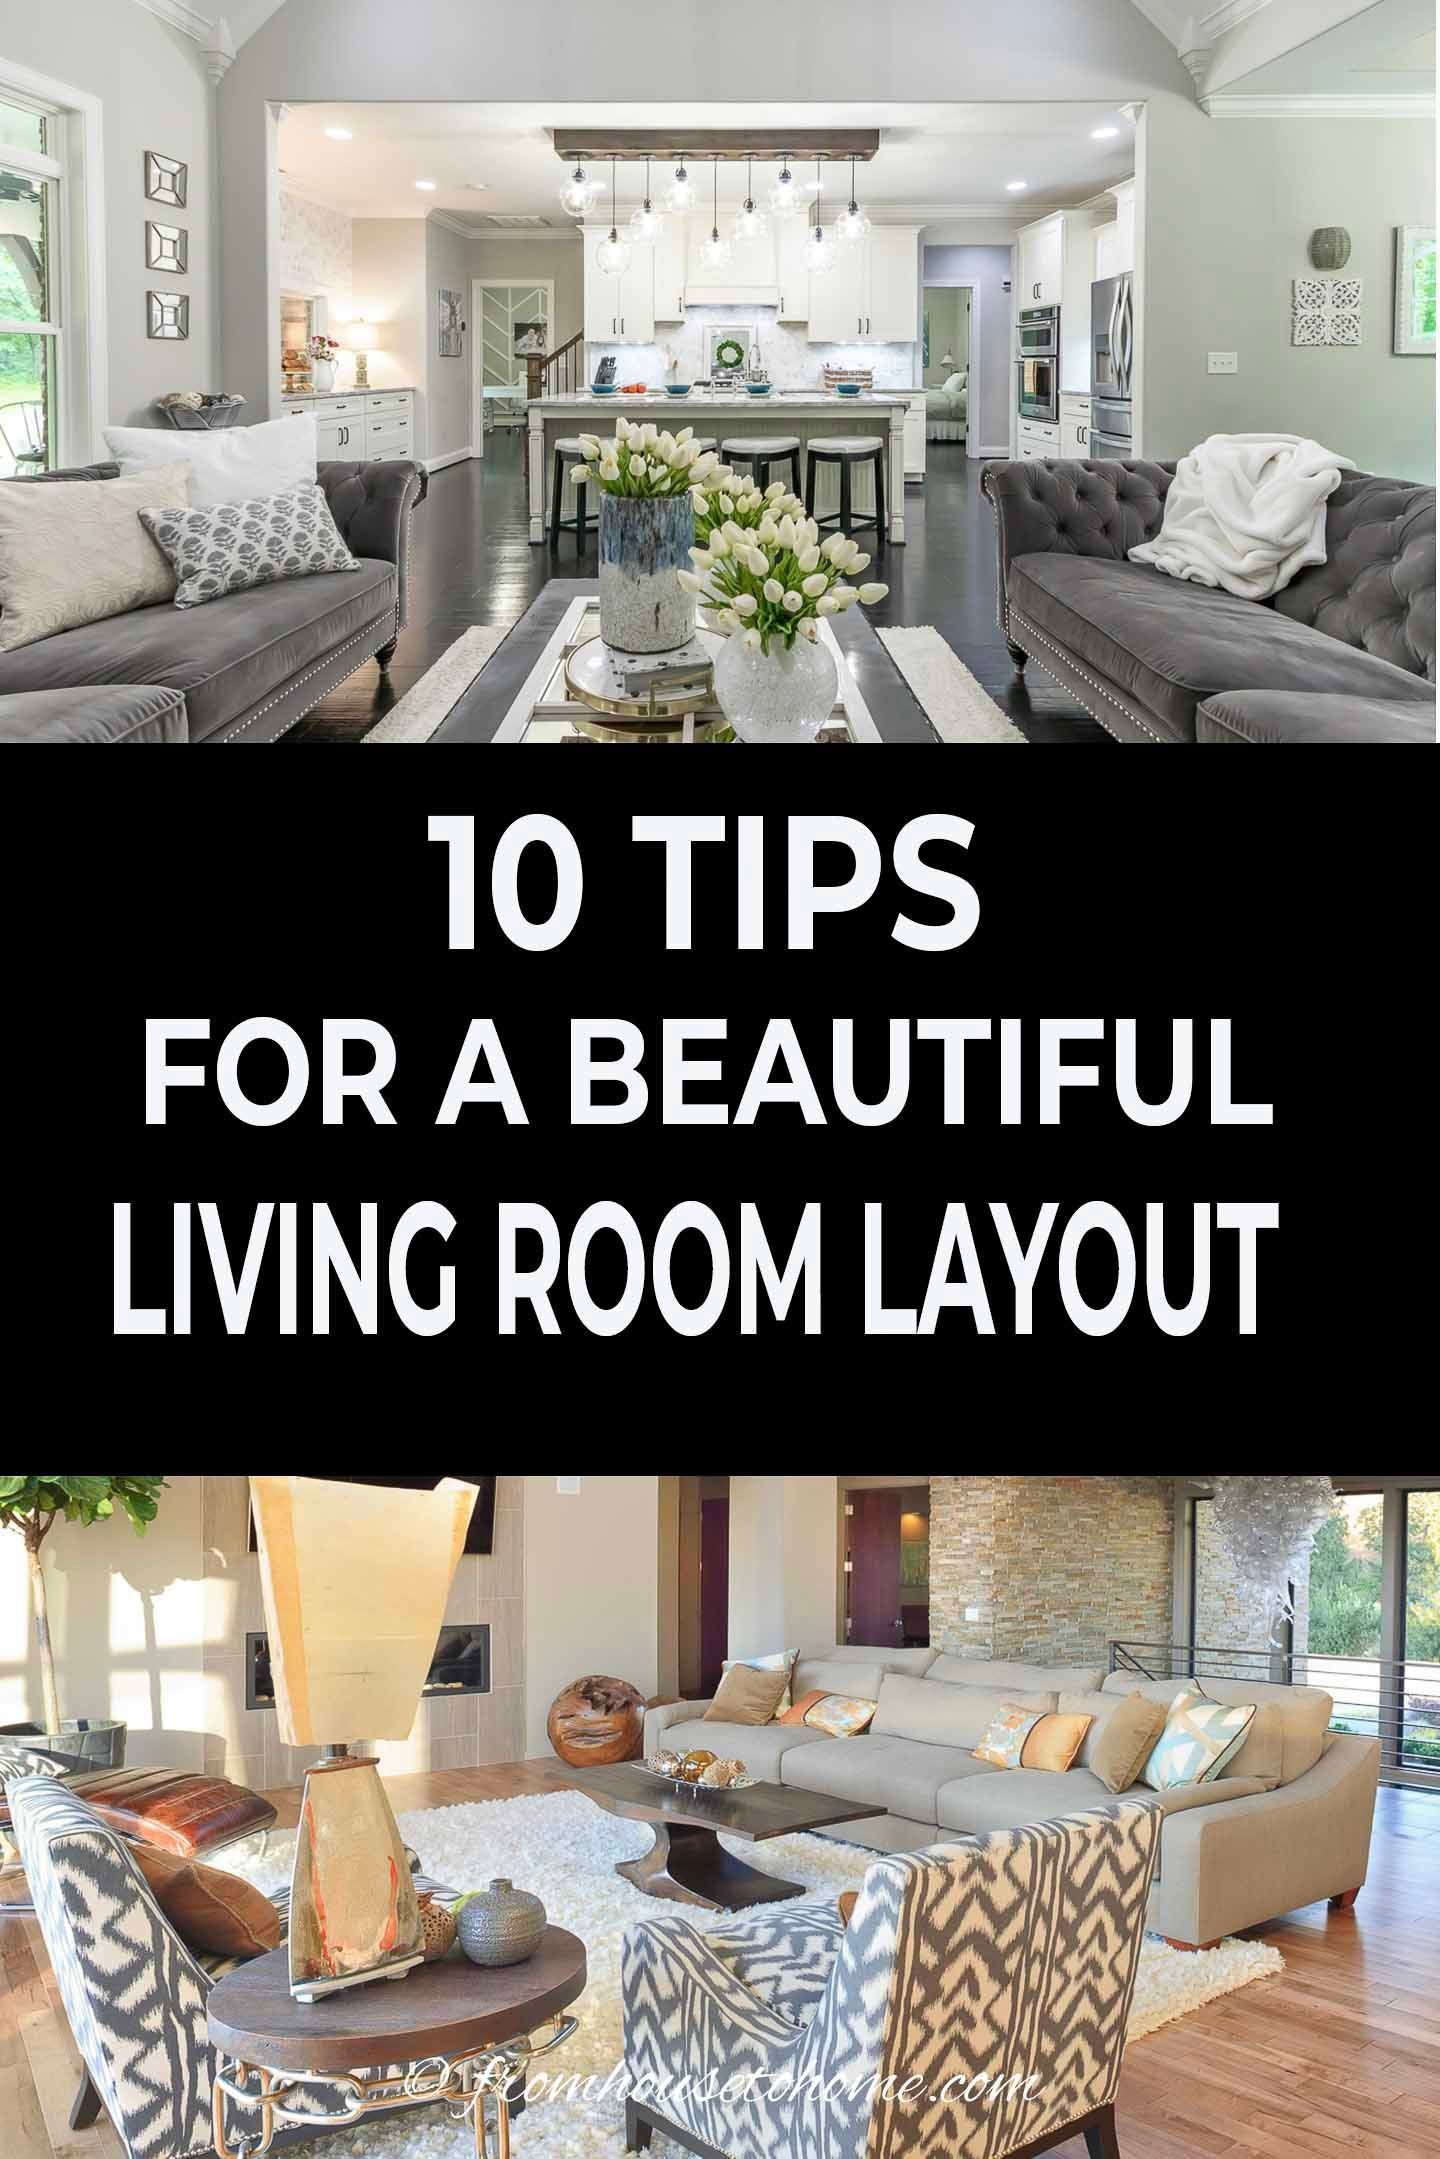 10 Common Living Room Layout Mistakes And How To Fix Them In 2020 Livingroom Layout Living Room Design Small Spaces Room Layout